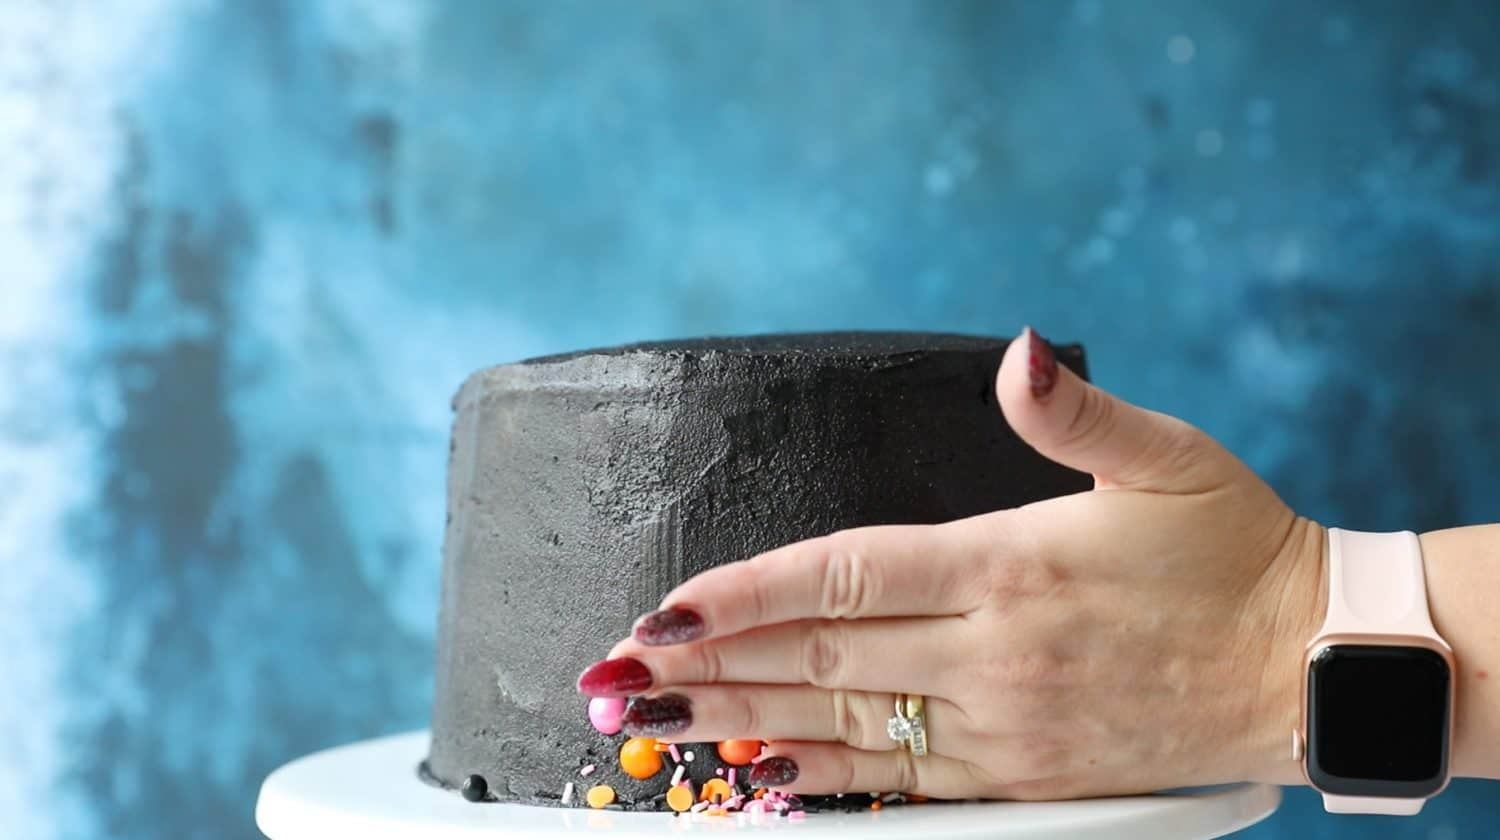 Pressing sprinkles into the side of a black cake.